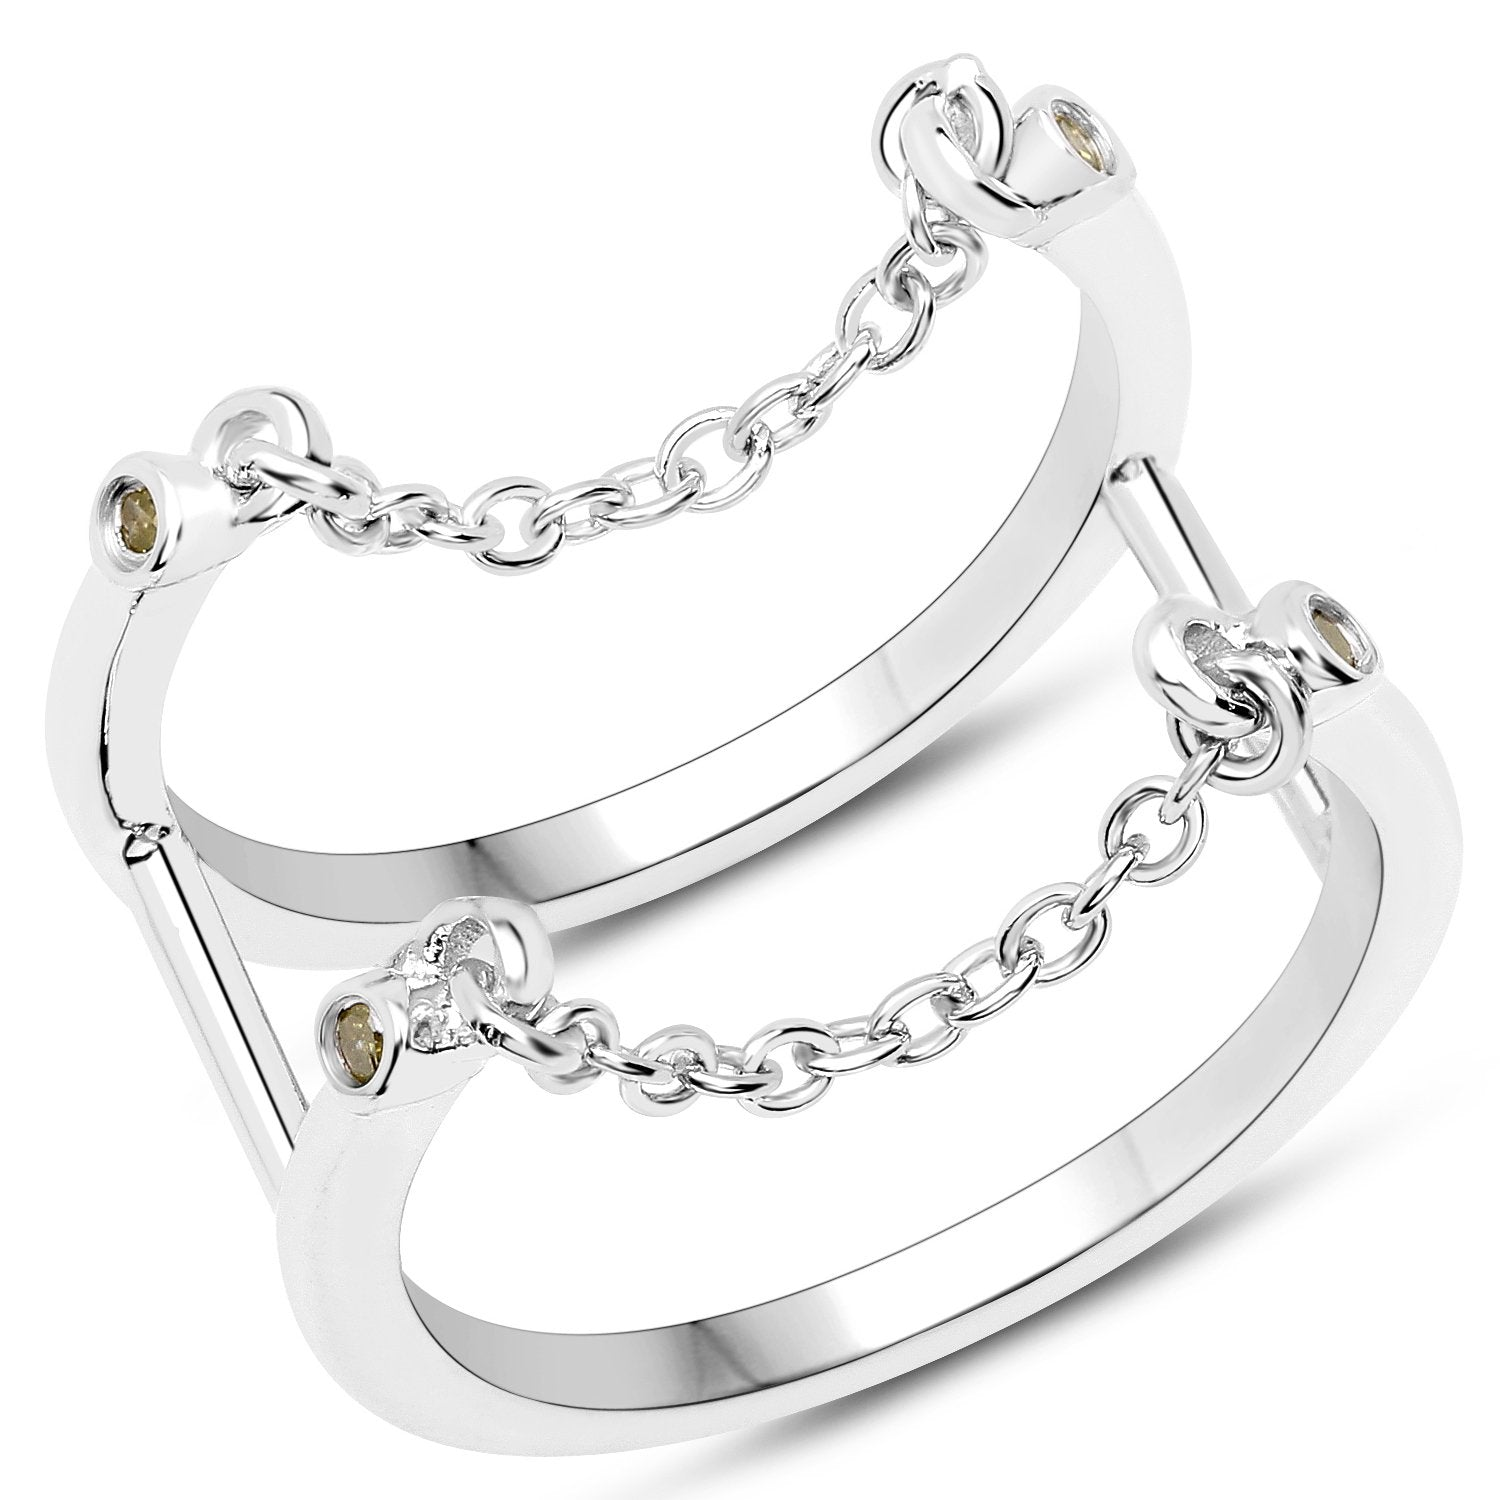 LoveHuang 0.04 Carats Genuine Yellow Diamond (I-J, I2-I3) Dangling Chain Ring Solid .925 Sterling Silver With Rhodium Plating